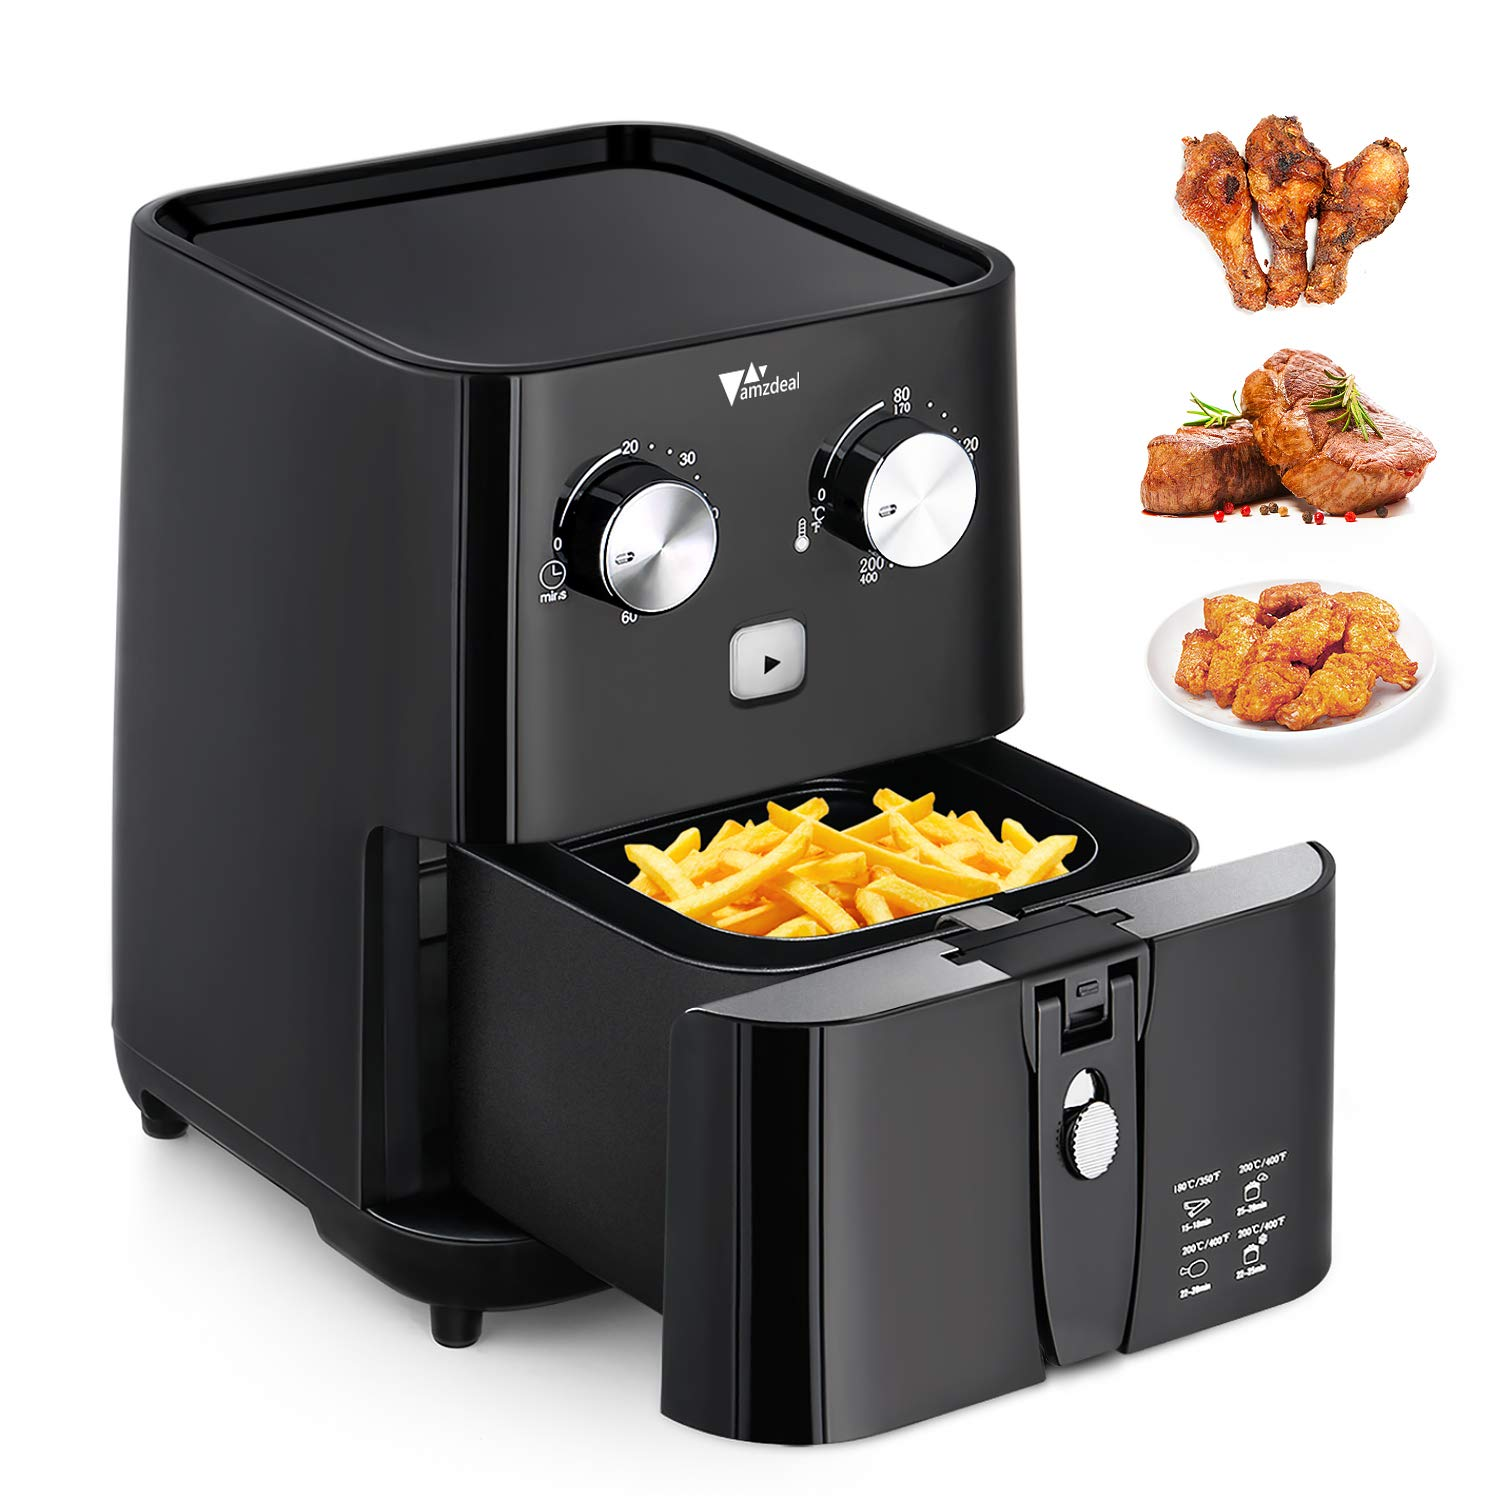 Amzdeal Air Fryer-Air Cooker Mini Small AirFryer with Timer and Temperature Control No Oil For Healthy Detachable Non Stick Fryer Basket 1.5L (Black)